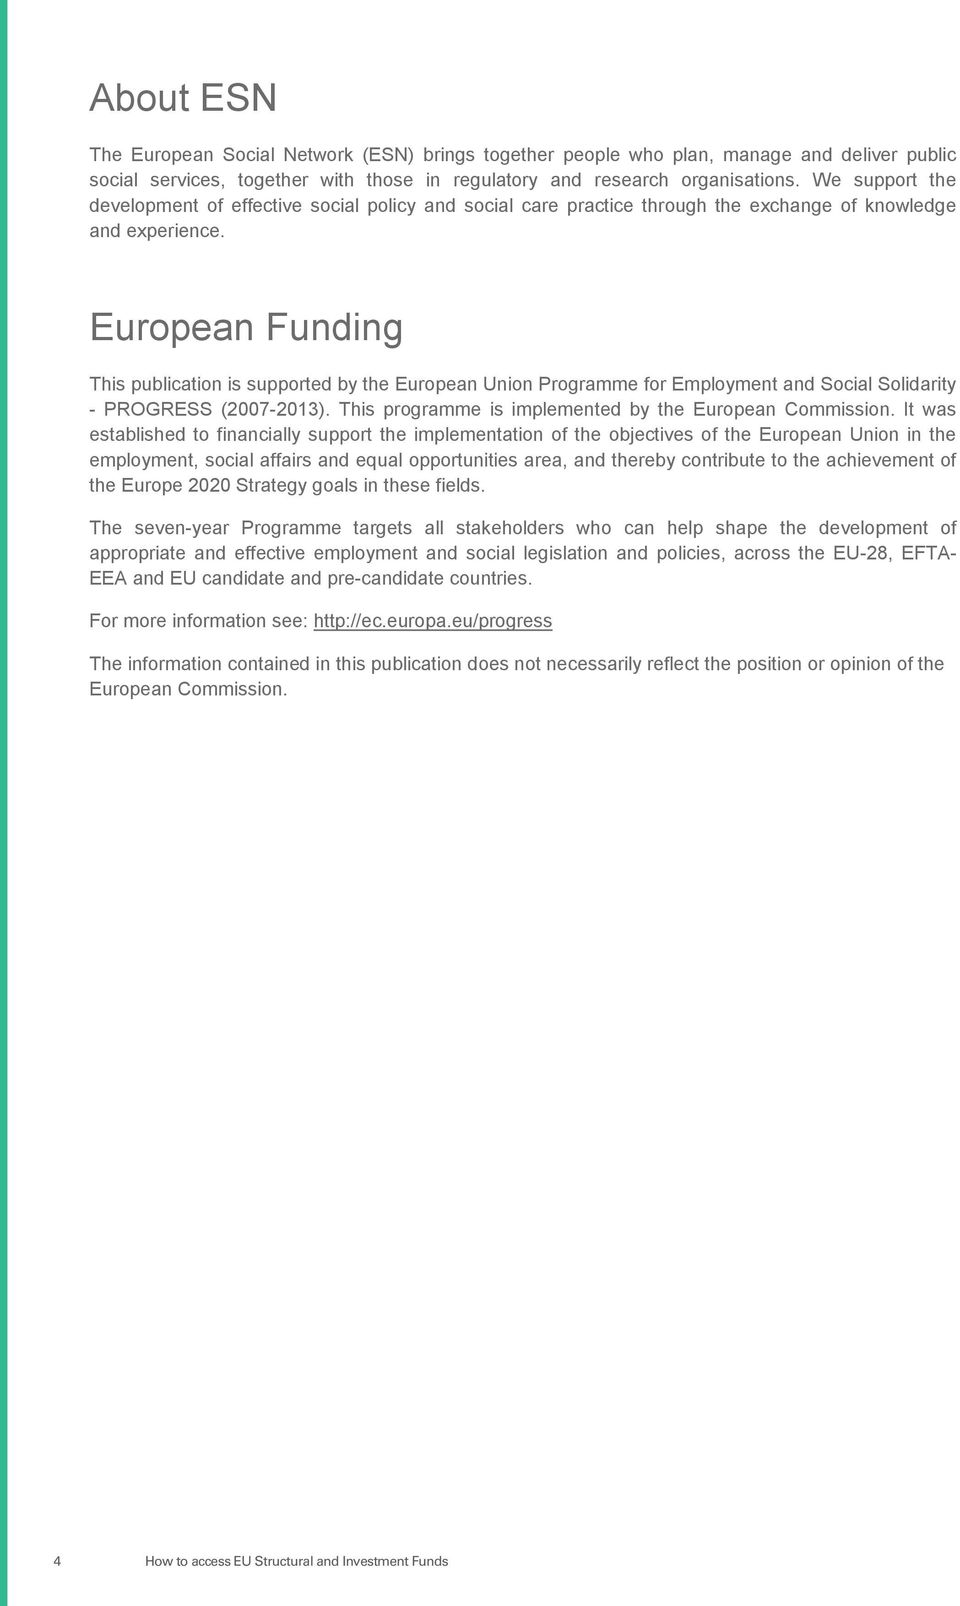 European Funding This publication is supported by the European Union Programme for Employment and Social Solidarity - PROGRESS (2007-2013). This programme is implemented by the European Commission.